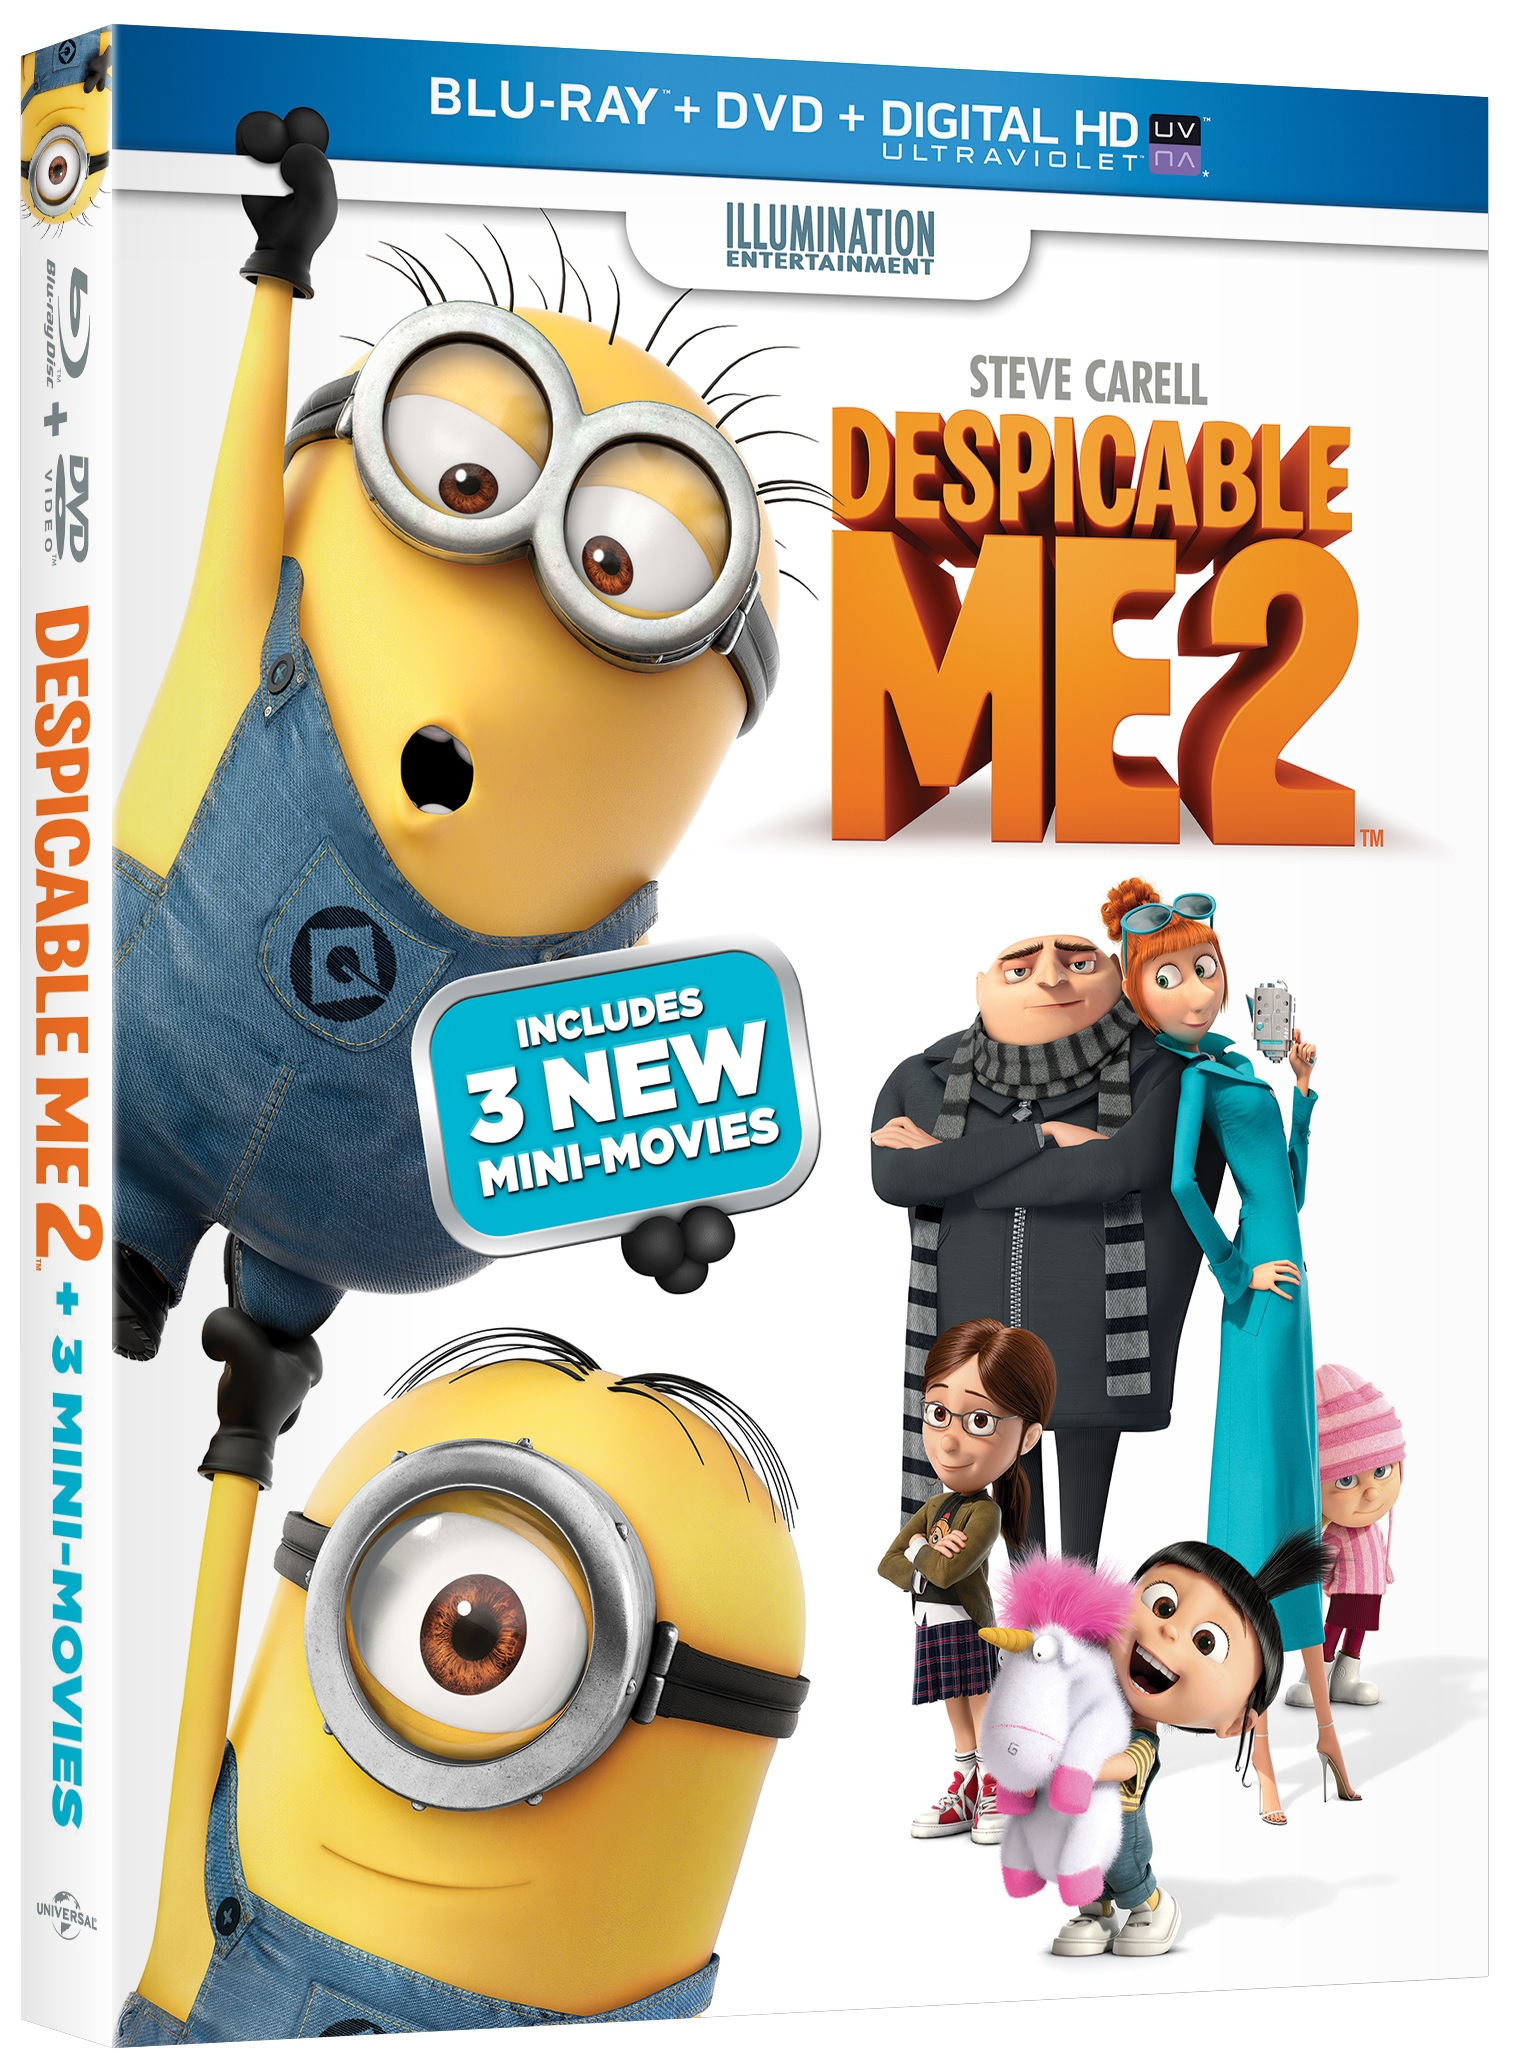 Despicable Me 2 Blu-ray Review